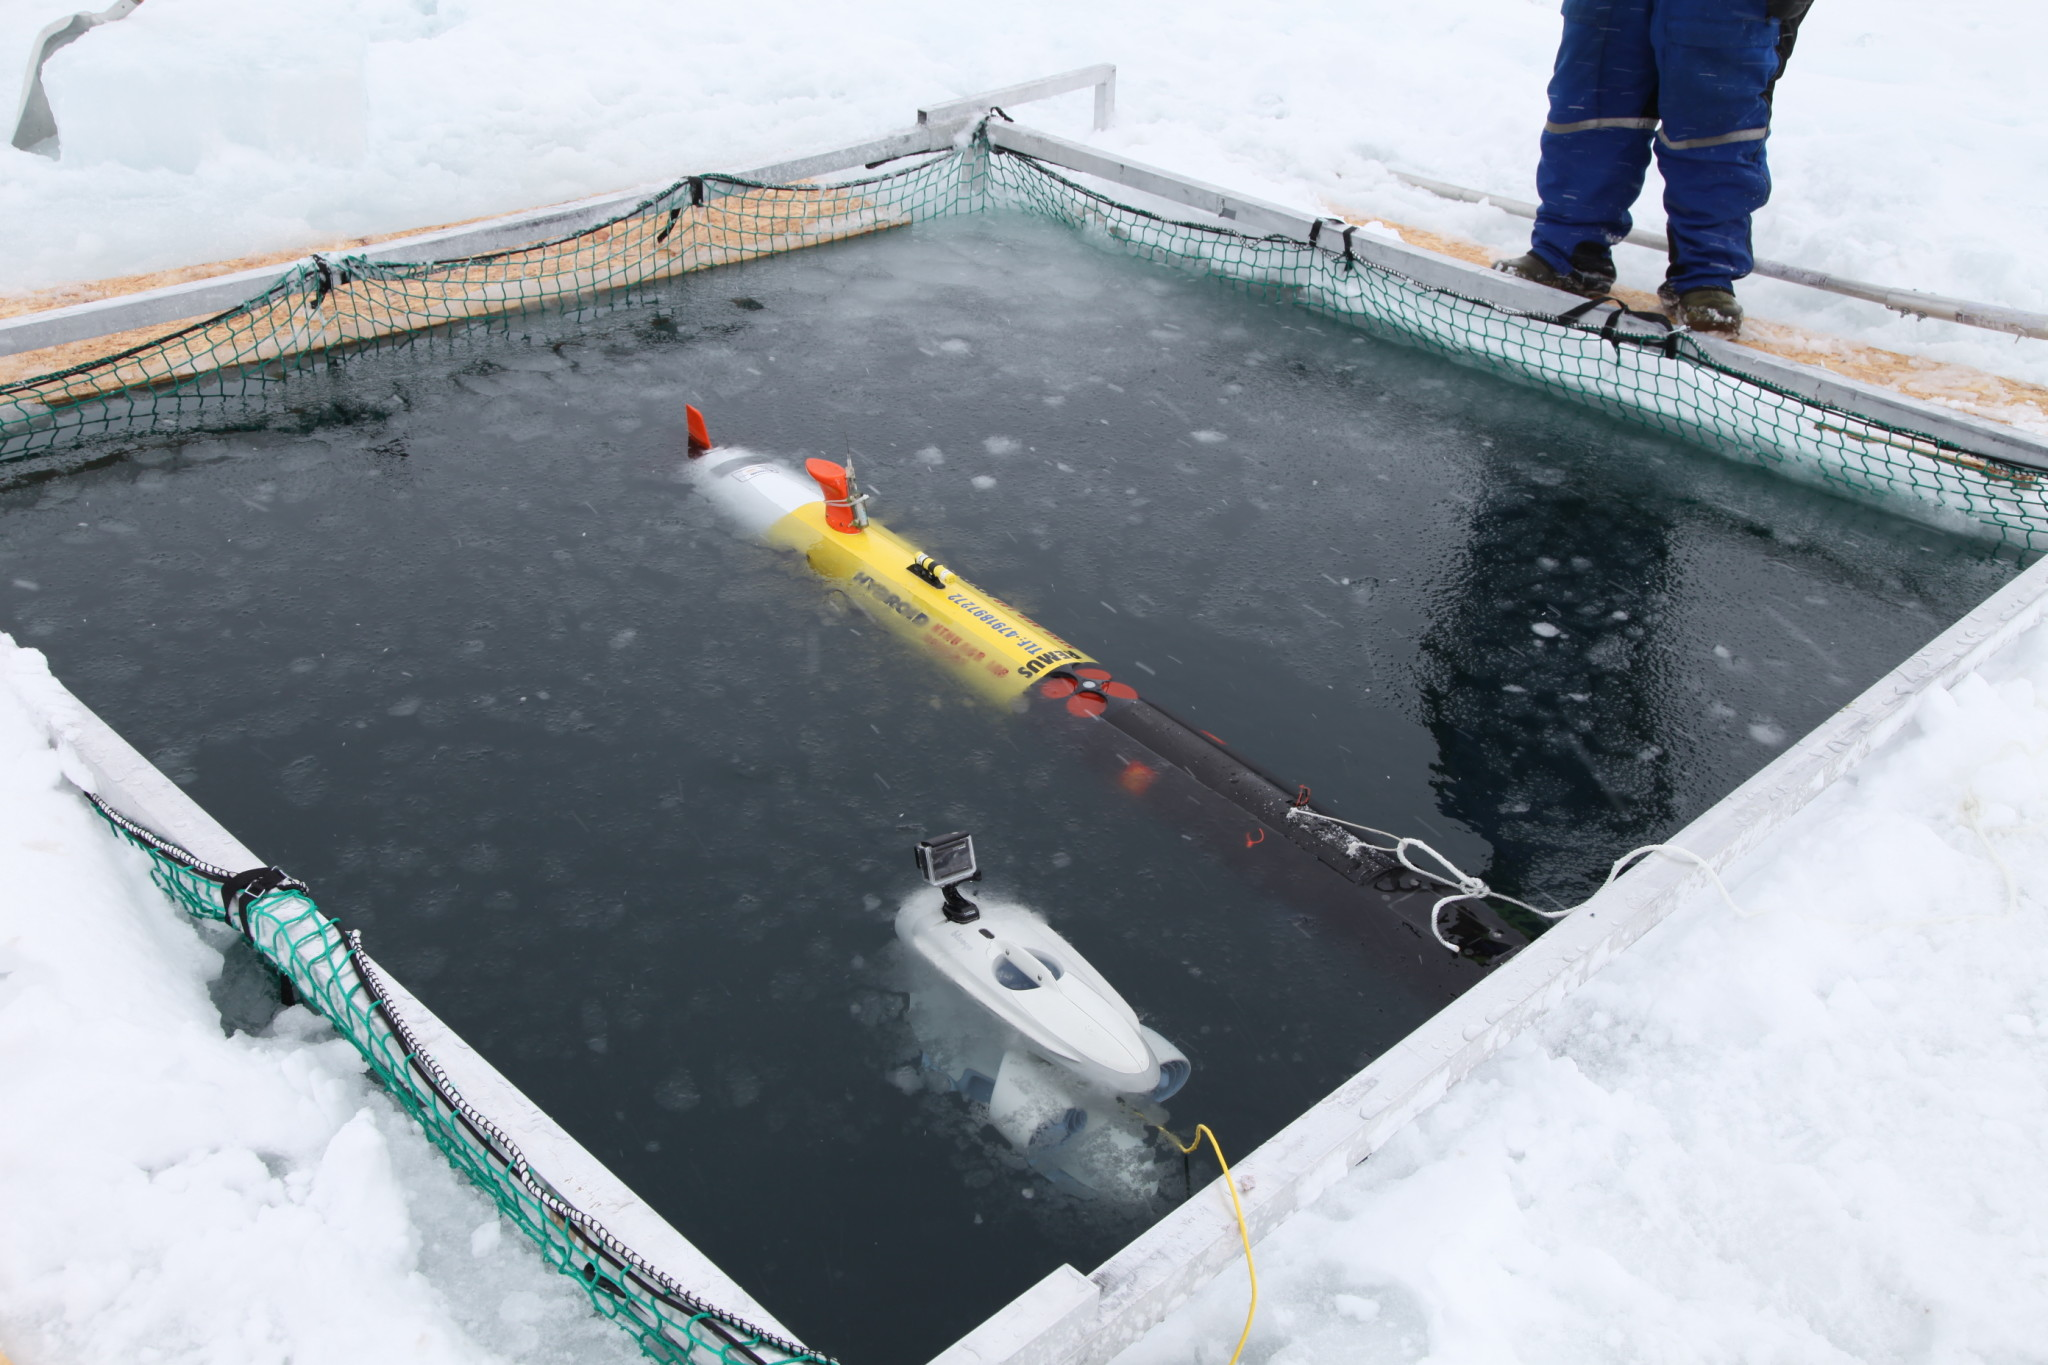 Blueye Pioneer and AUV REMUS 100 in the ice hole